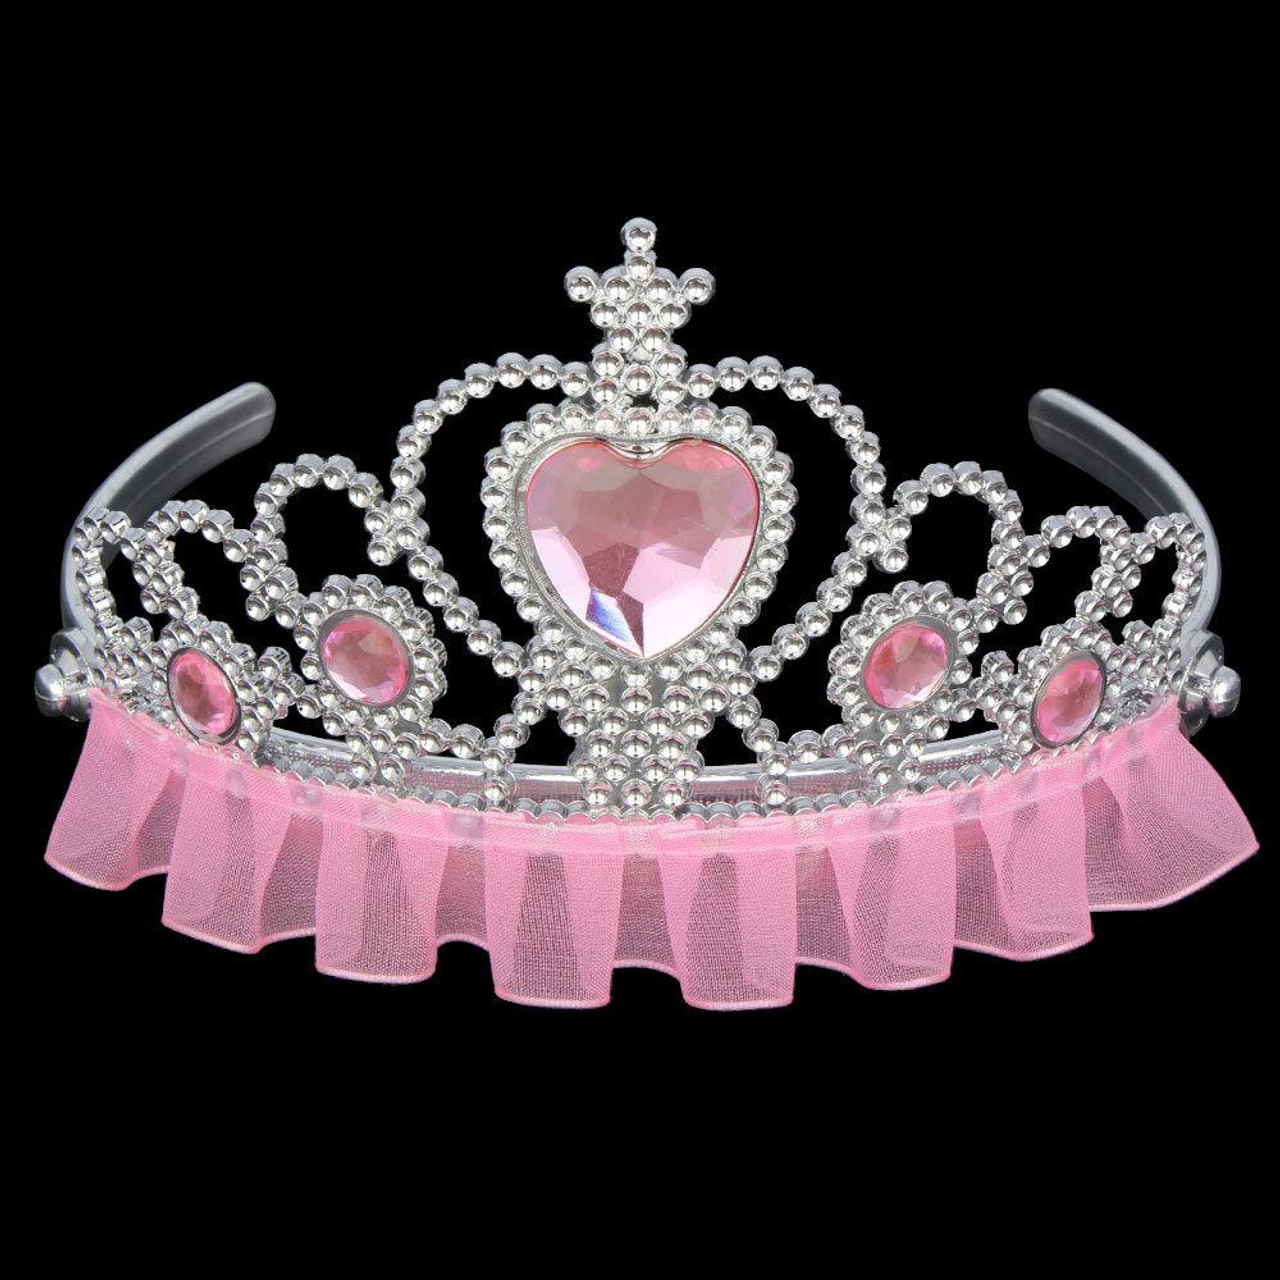 Pink princess tiara